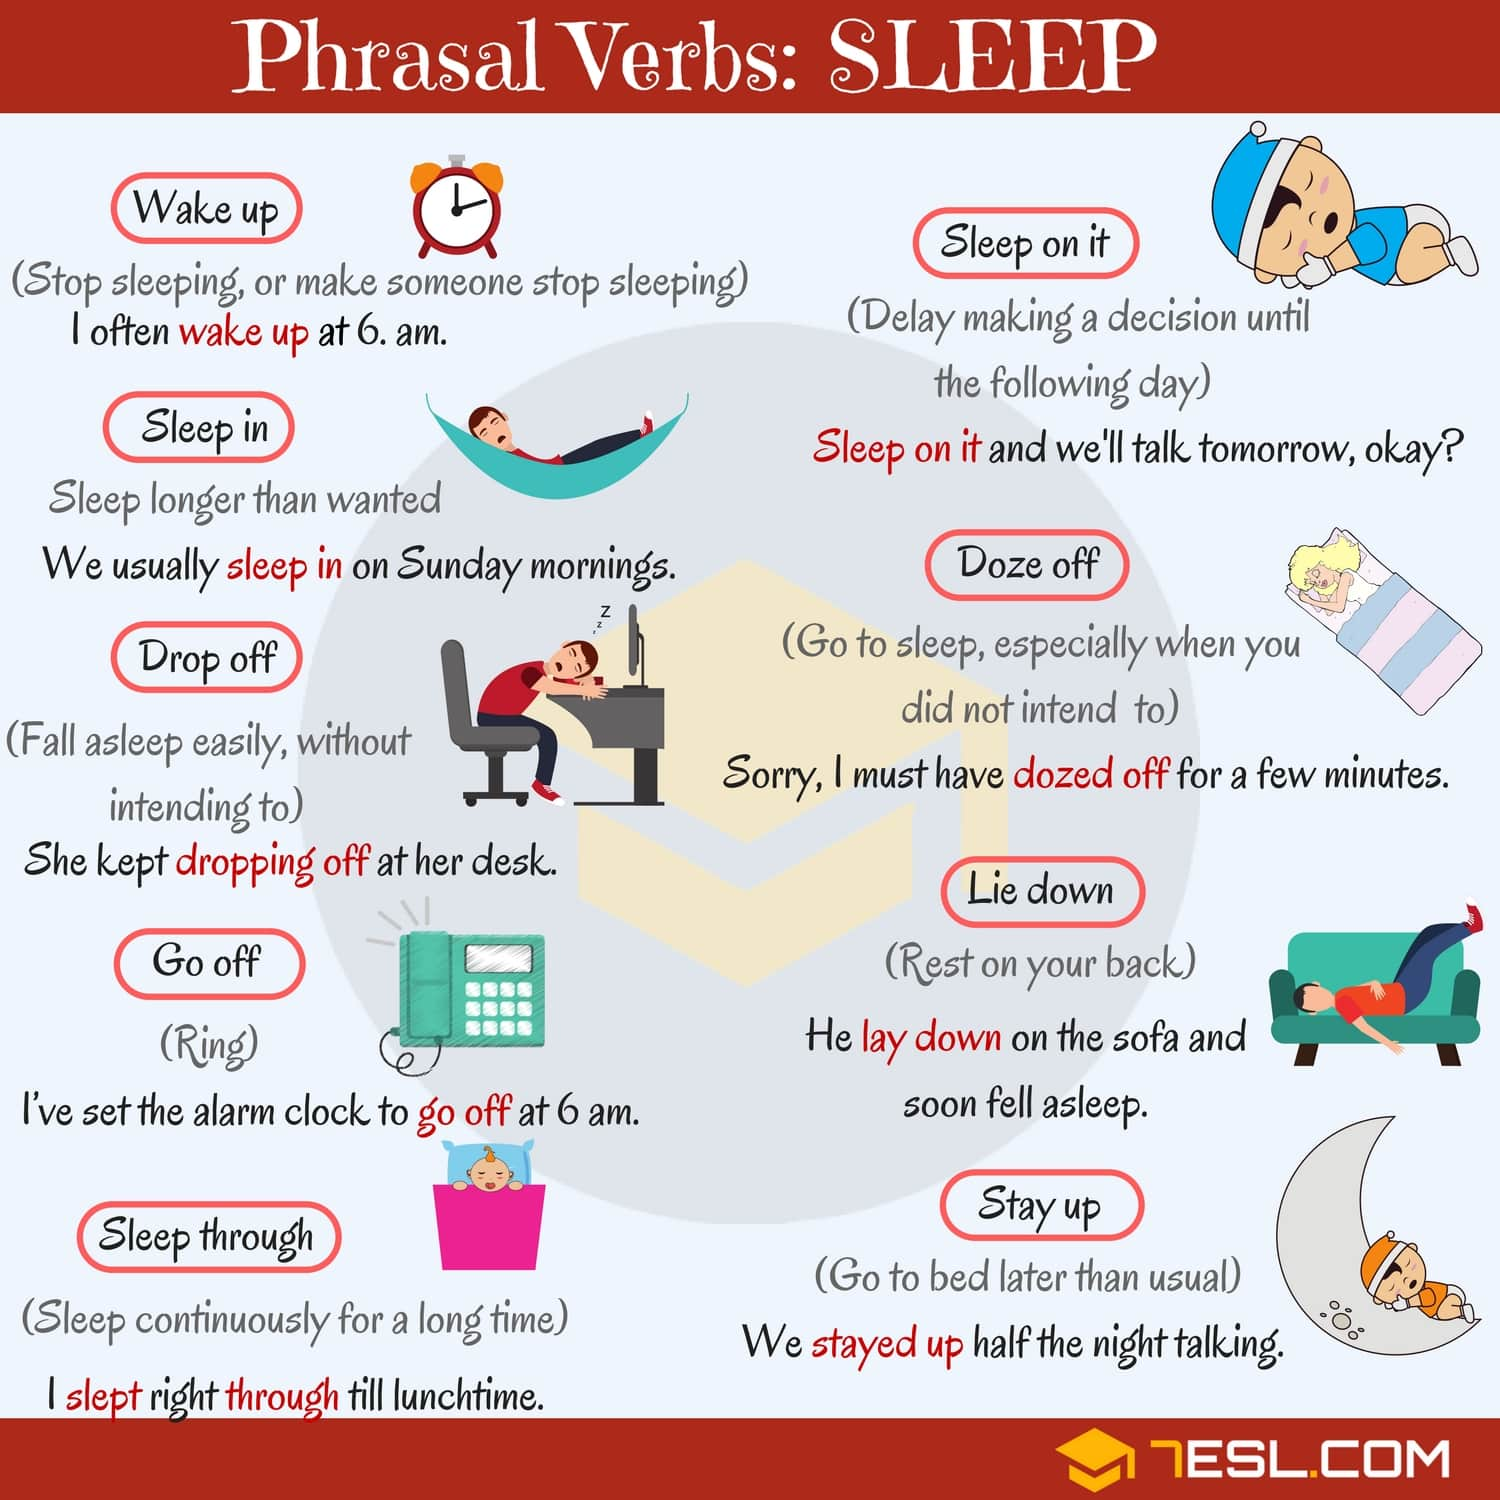 SLEEP Vocabulary: 12 Common Sleep Phrasal Verbs